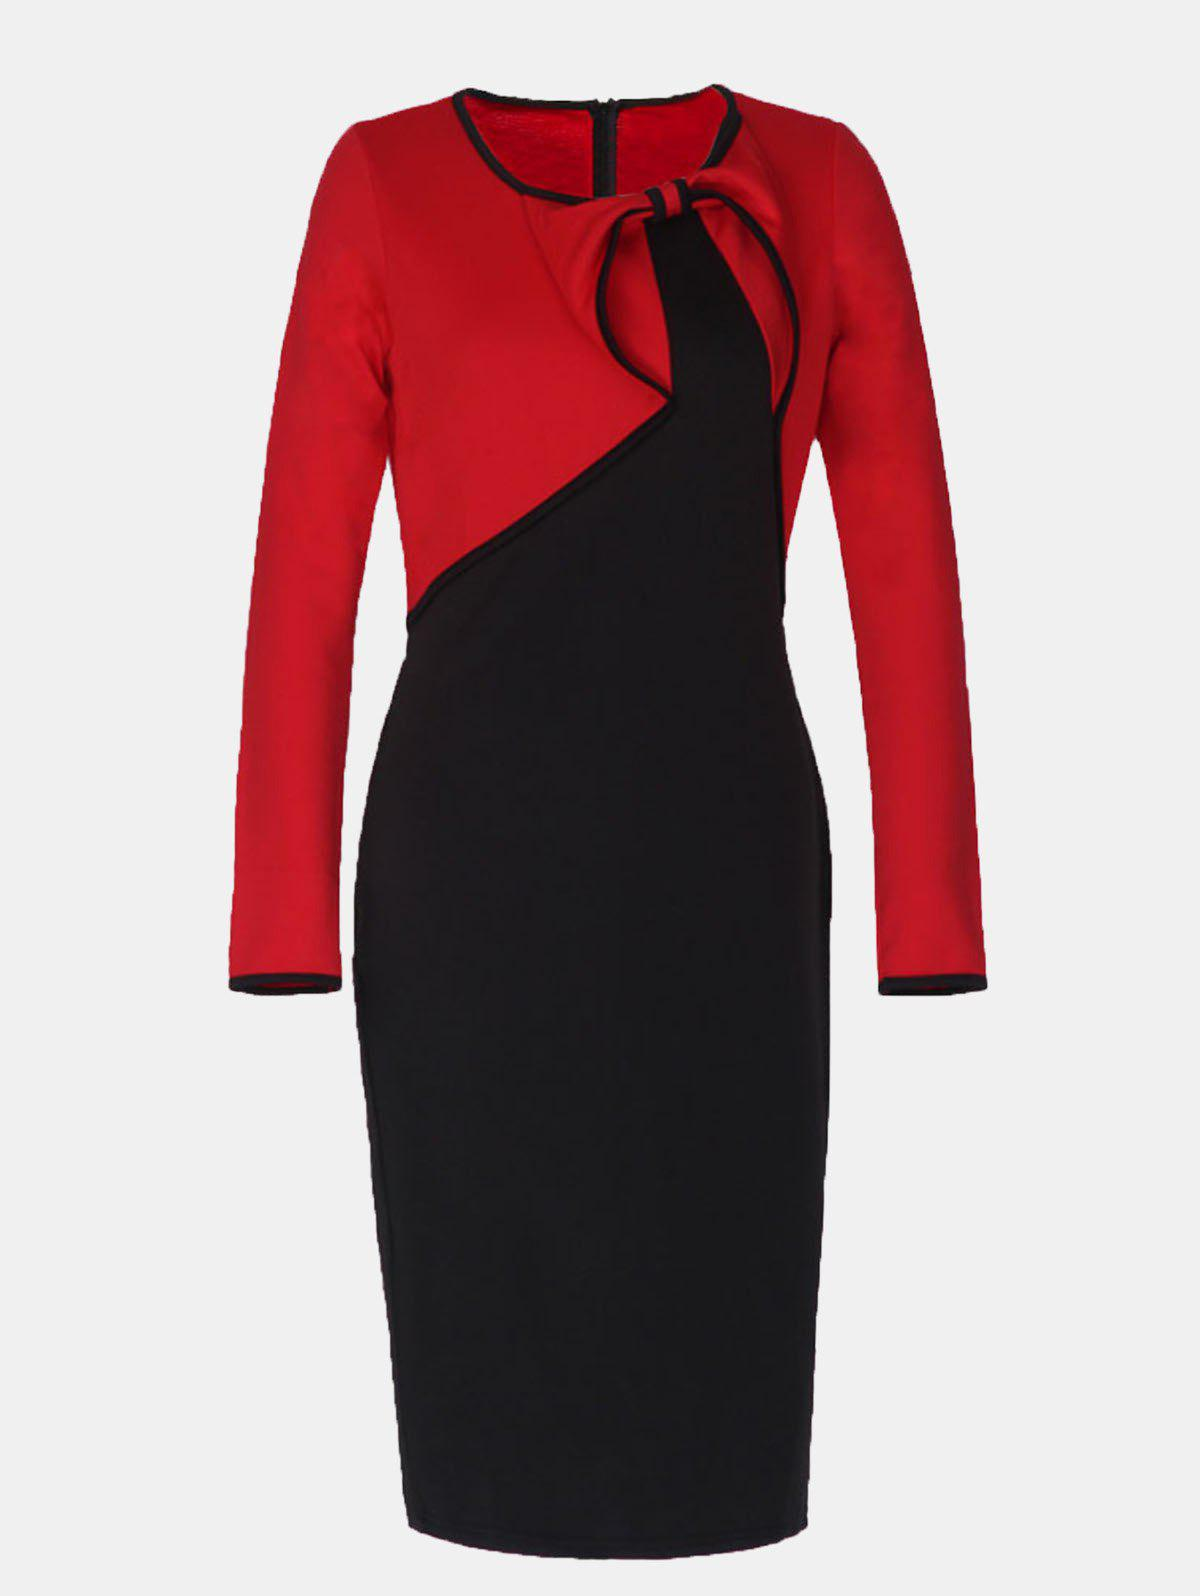 Latest Vintage Fake Two Piece Round Collar Long Sleeve Pencil Dress